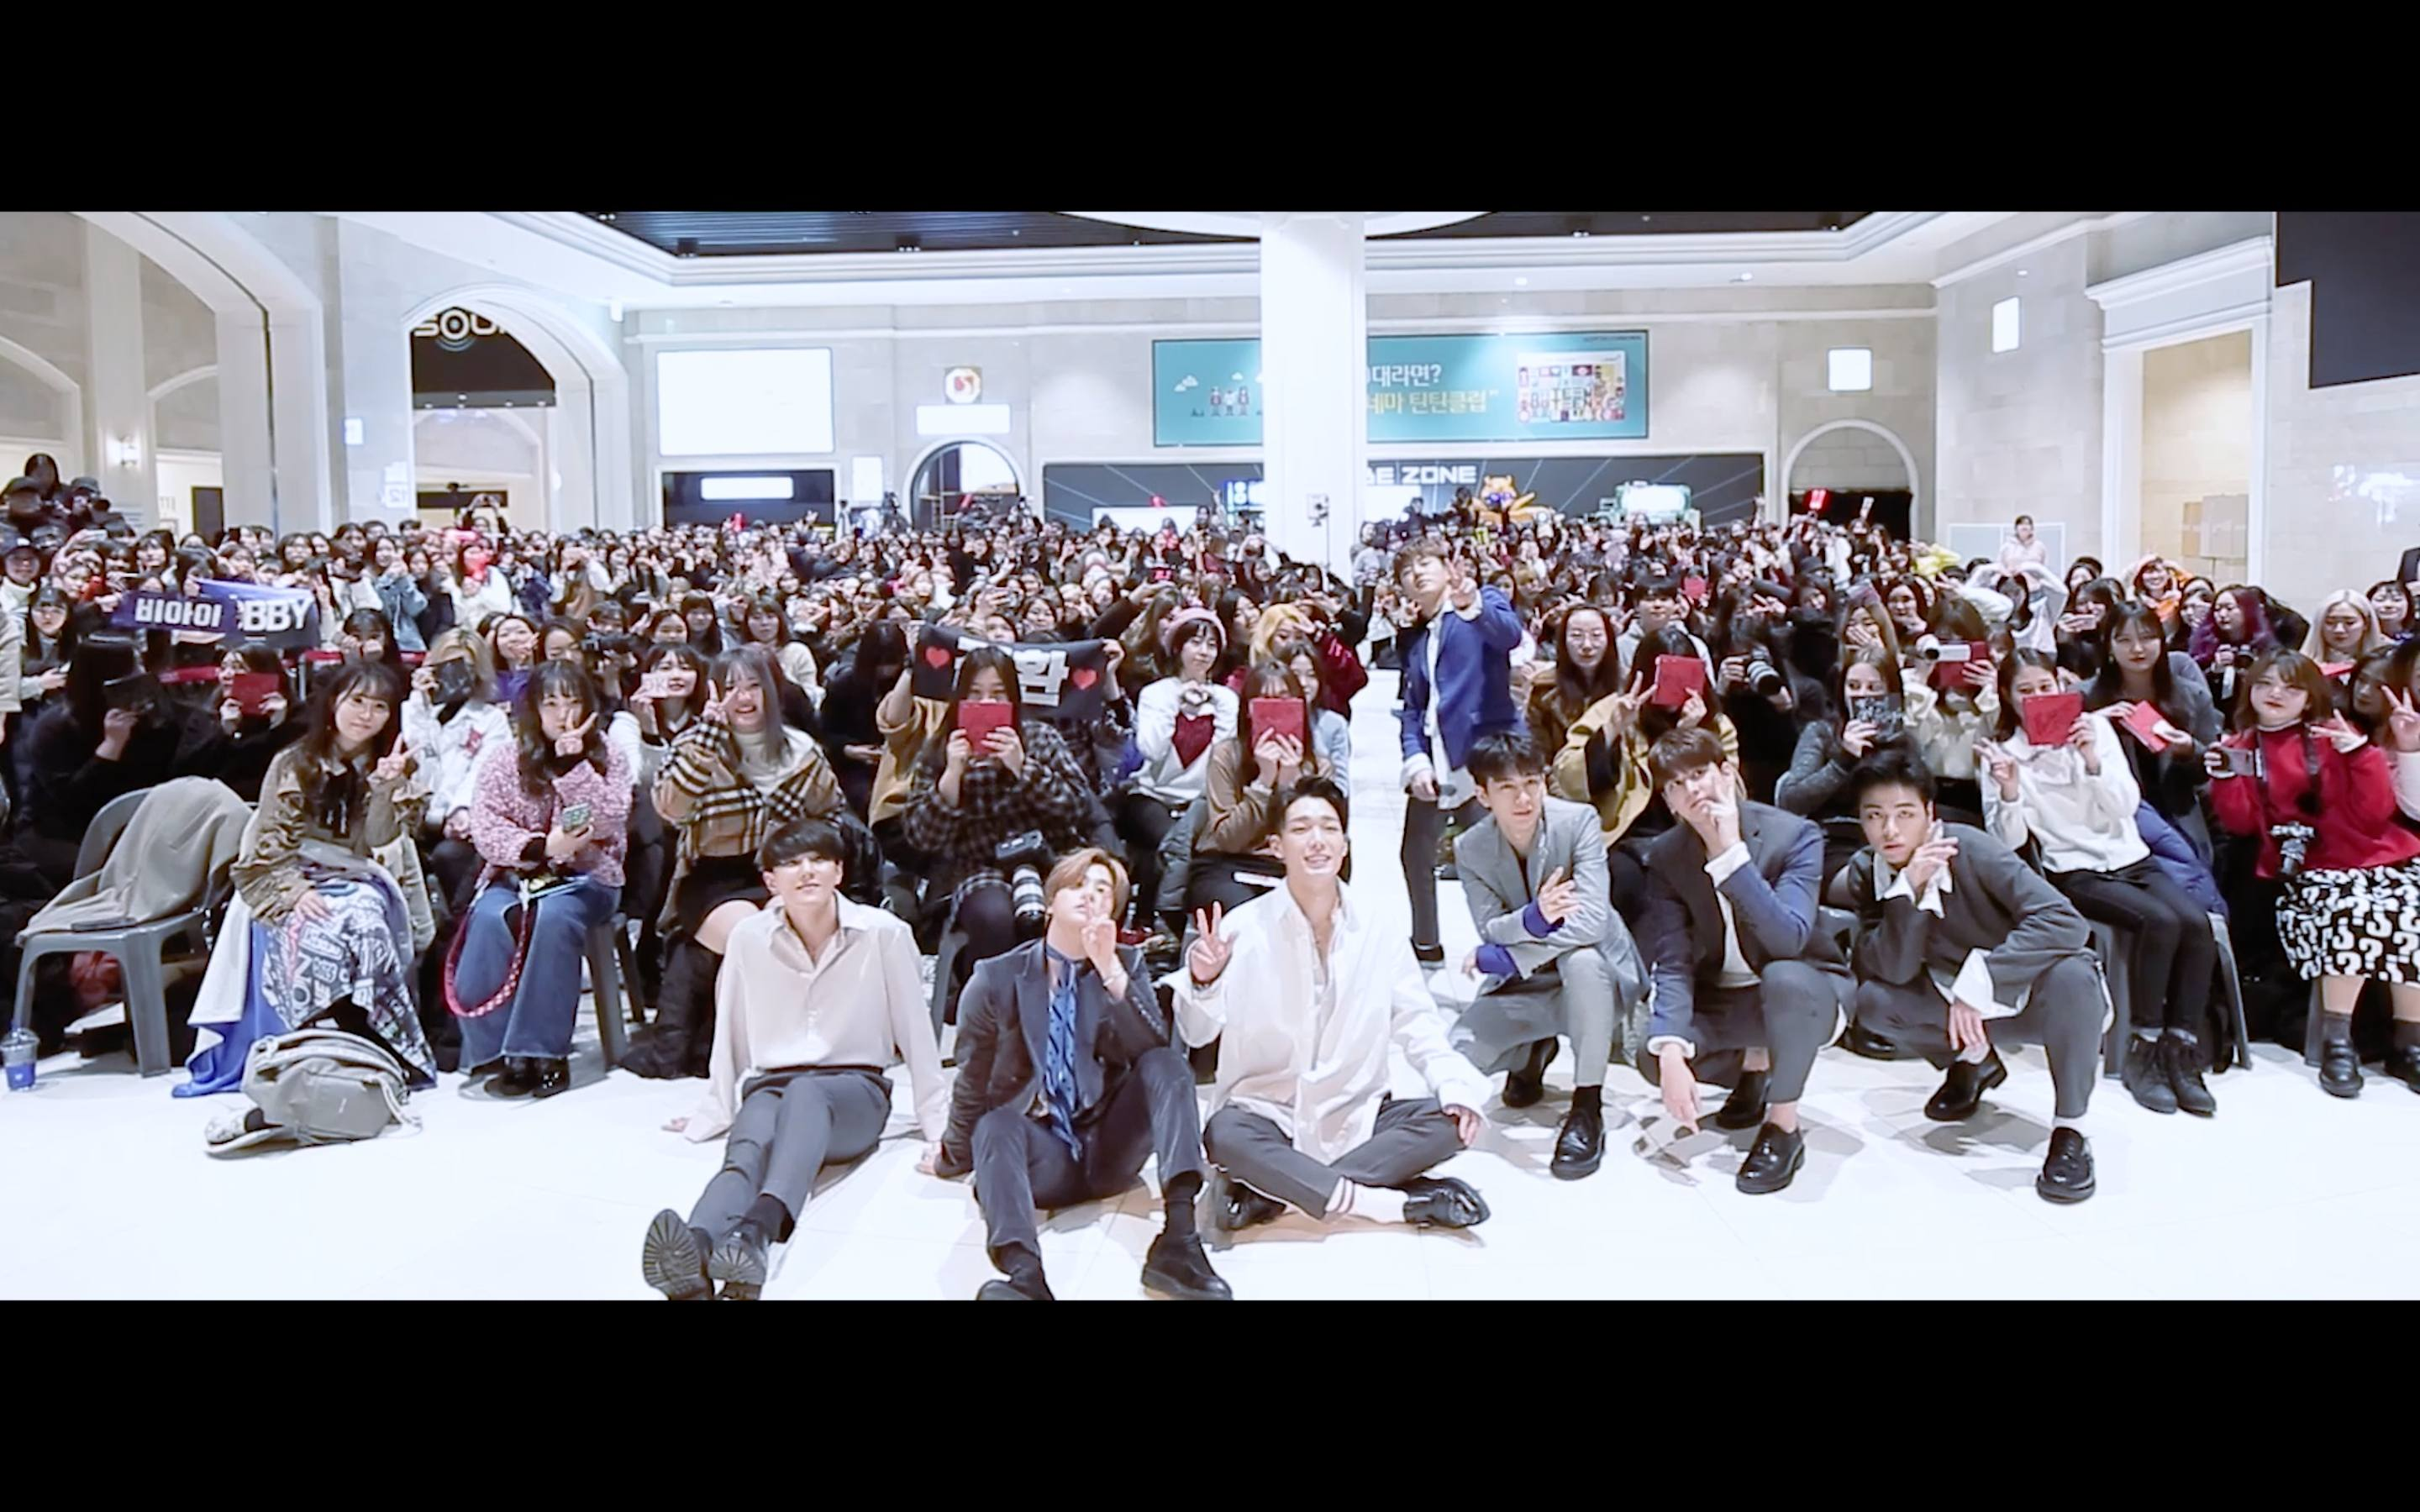 iKON - '2nd ALBUM : RETURN' FAN SIGNING DAY IN JAMSIL